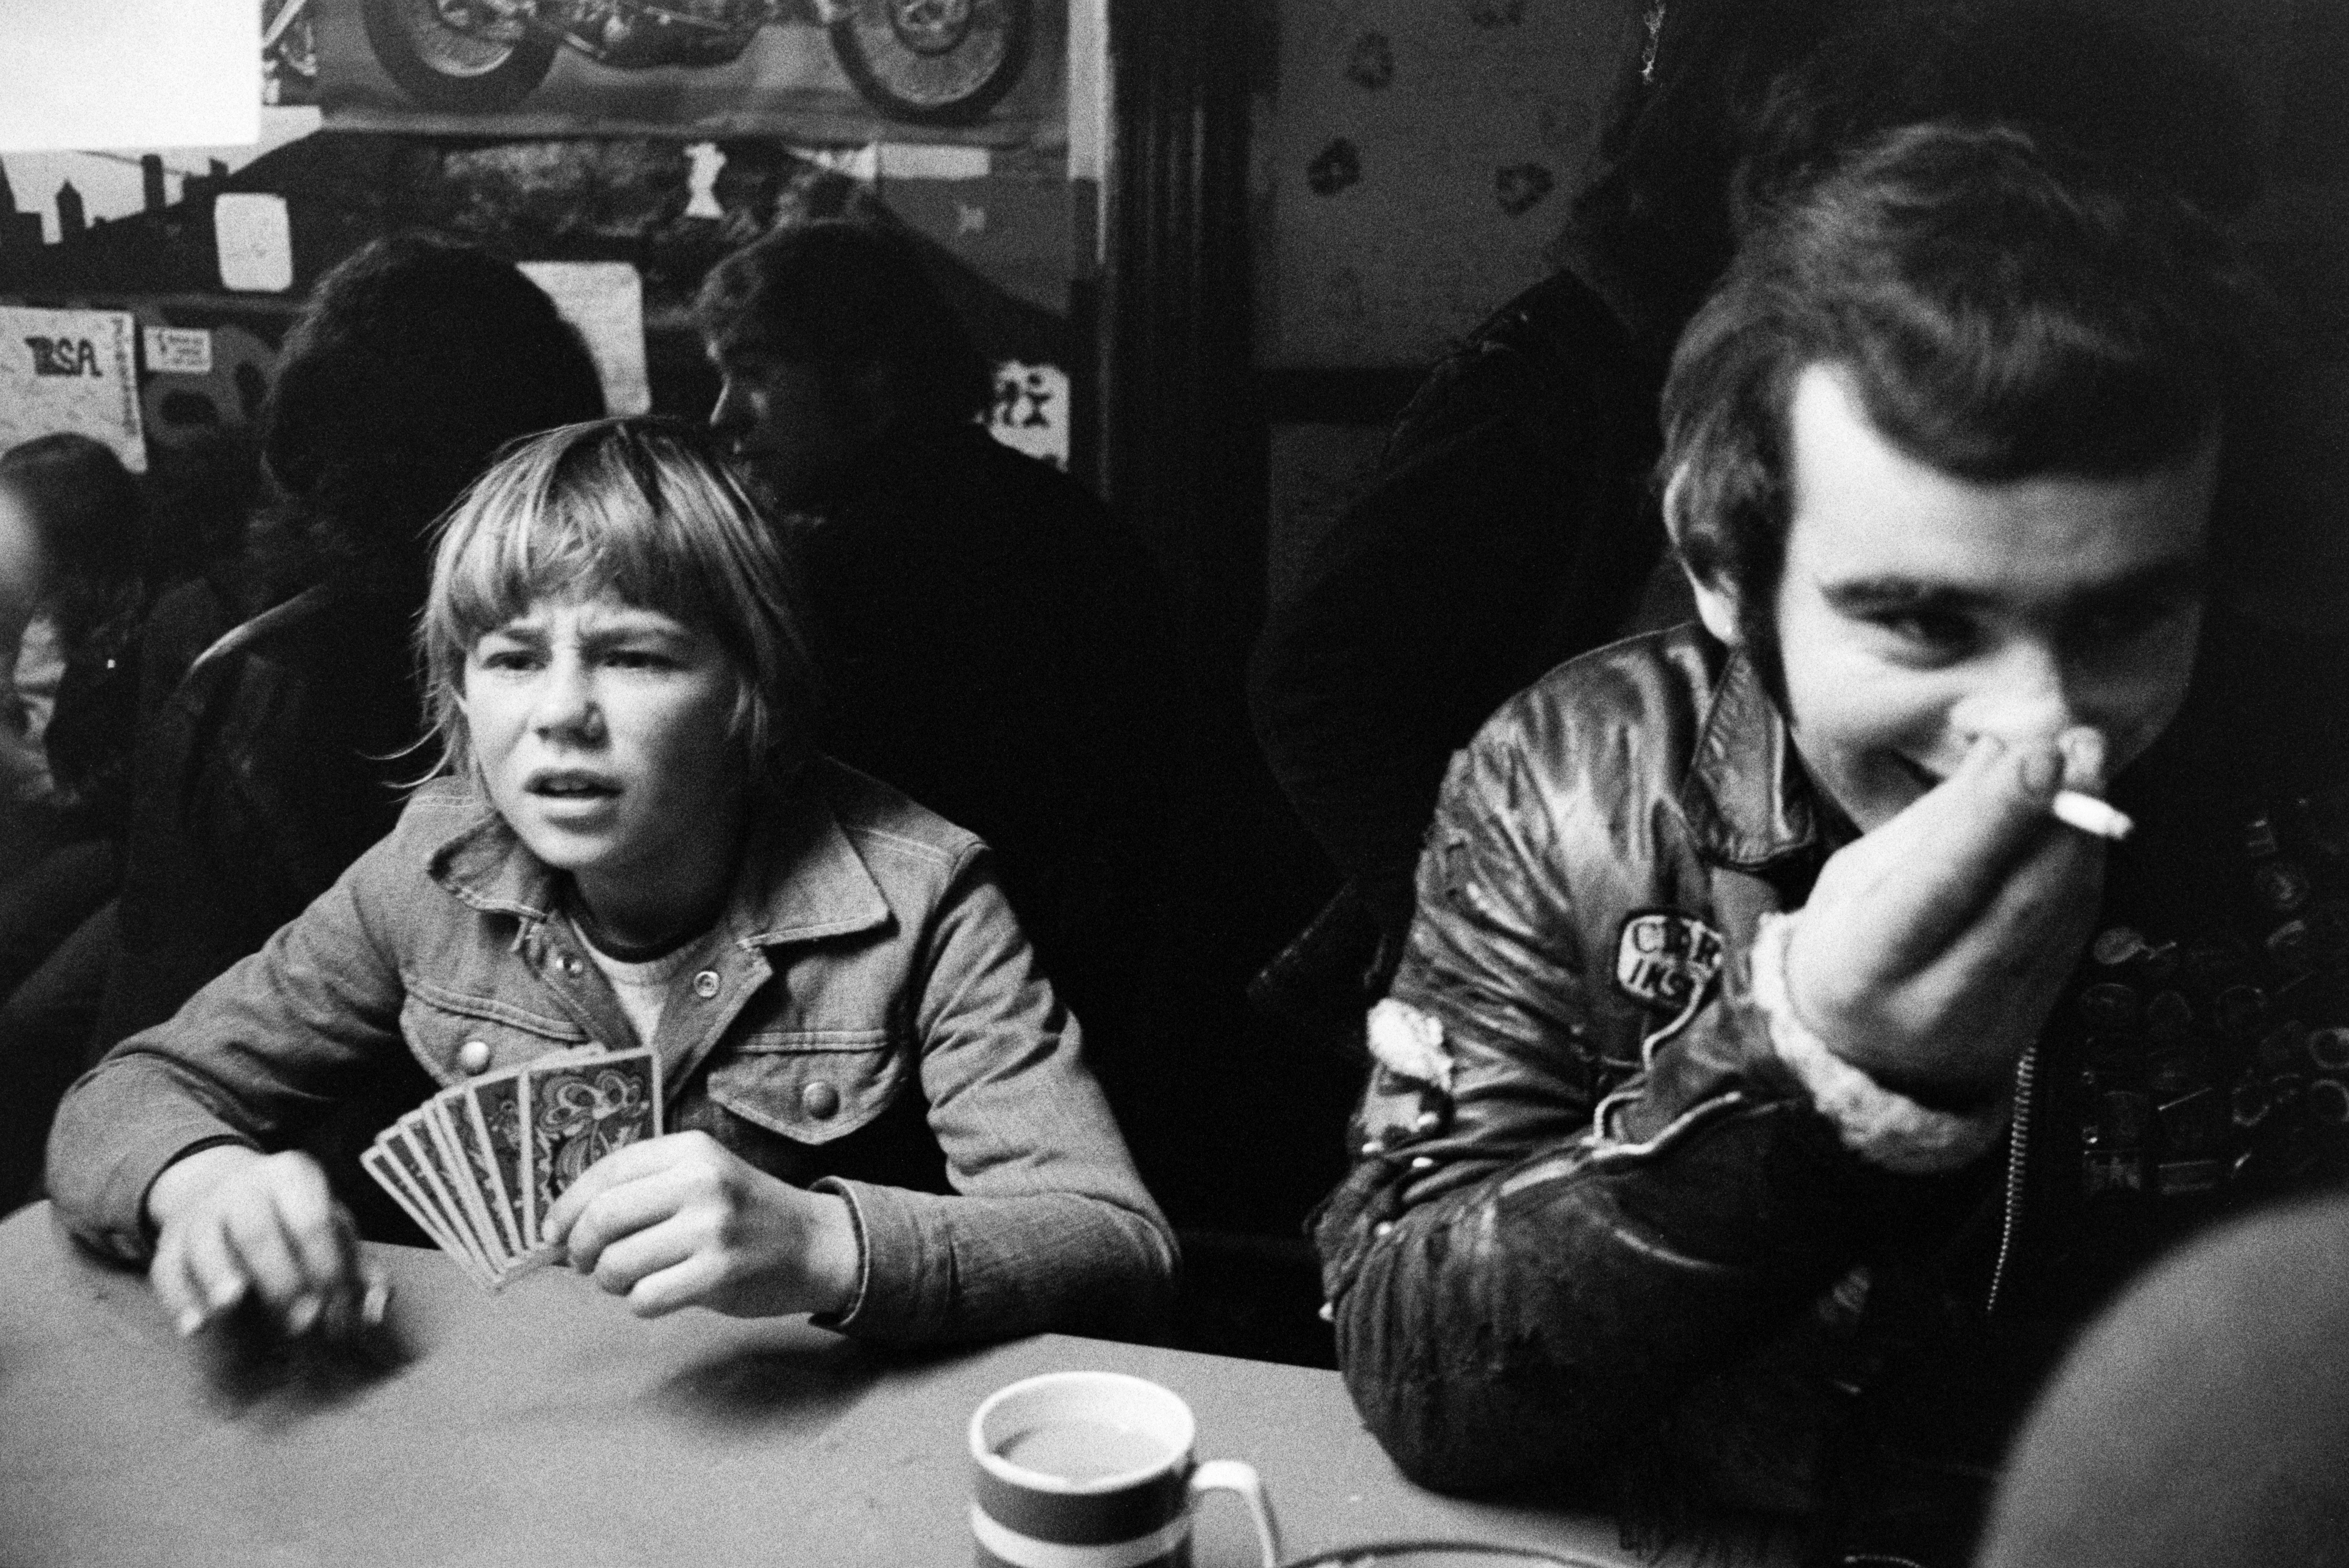 A young man and boy playing cards at a table, possibly in a pub, youth club or cafe. The young man is smoking and wearing a leather jacket.